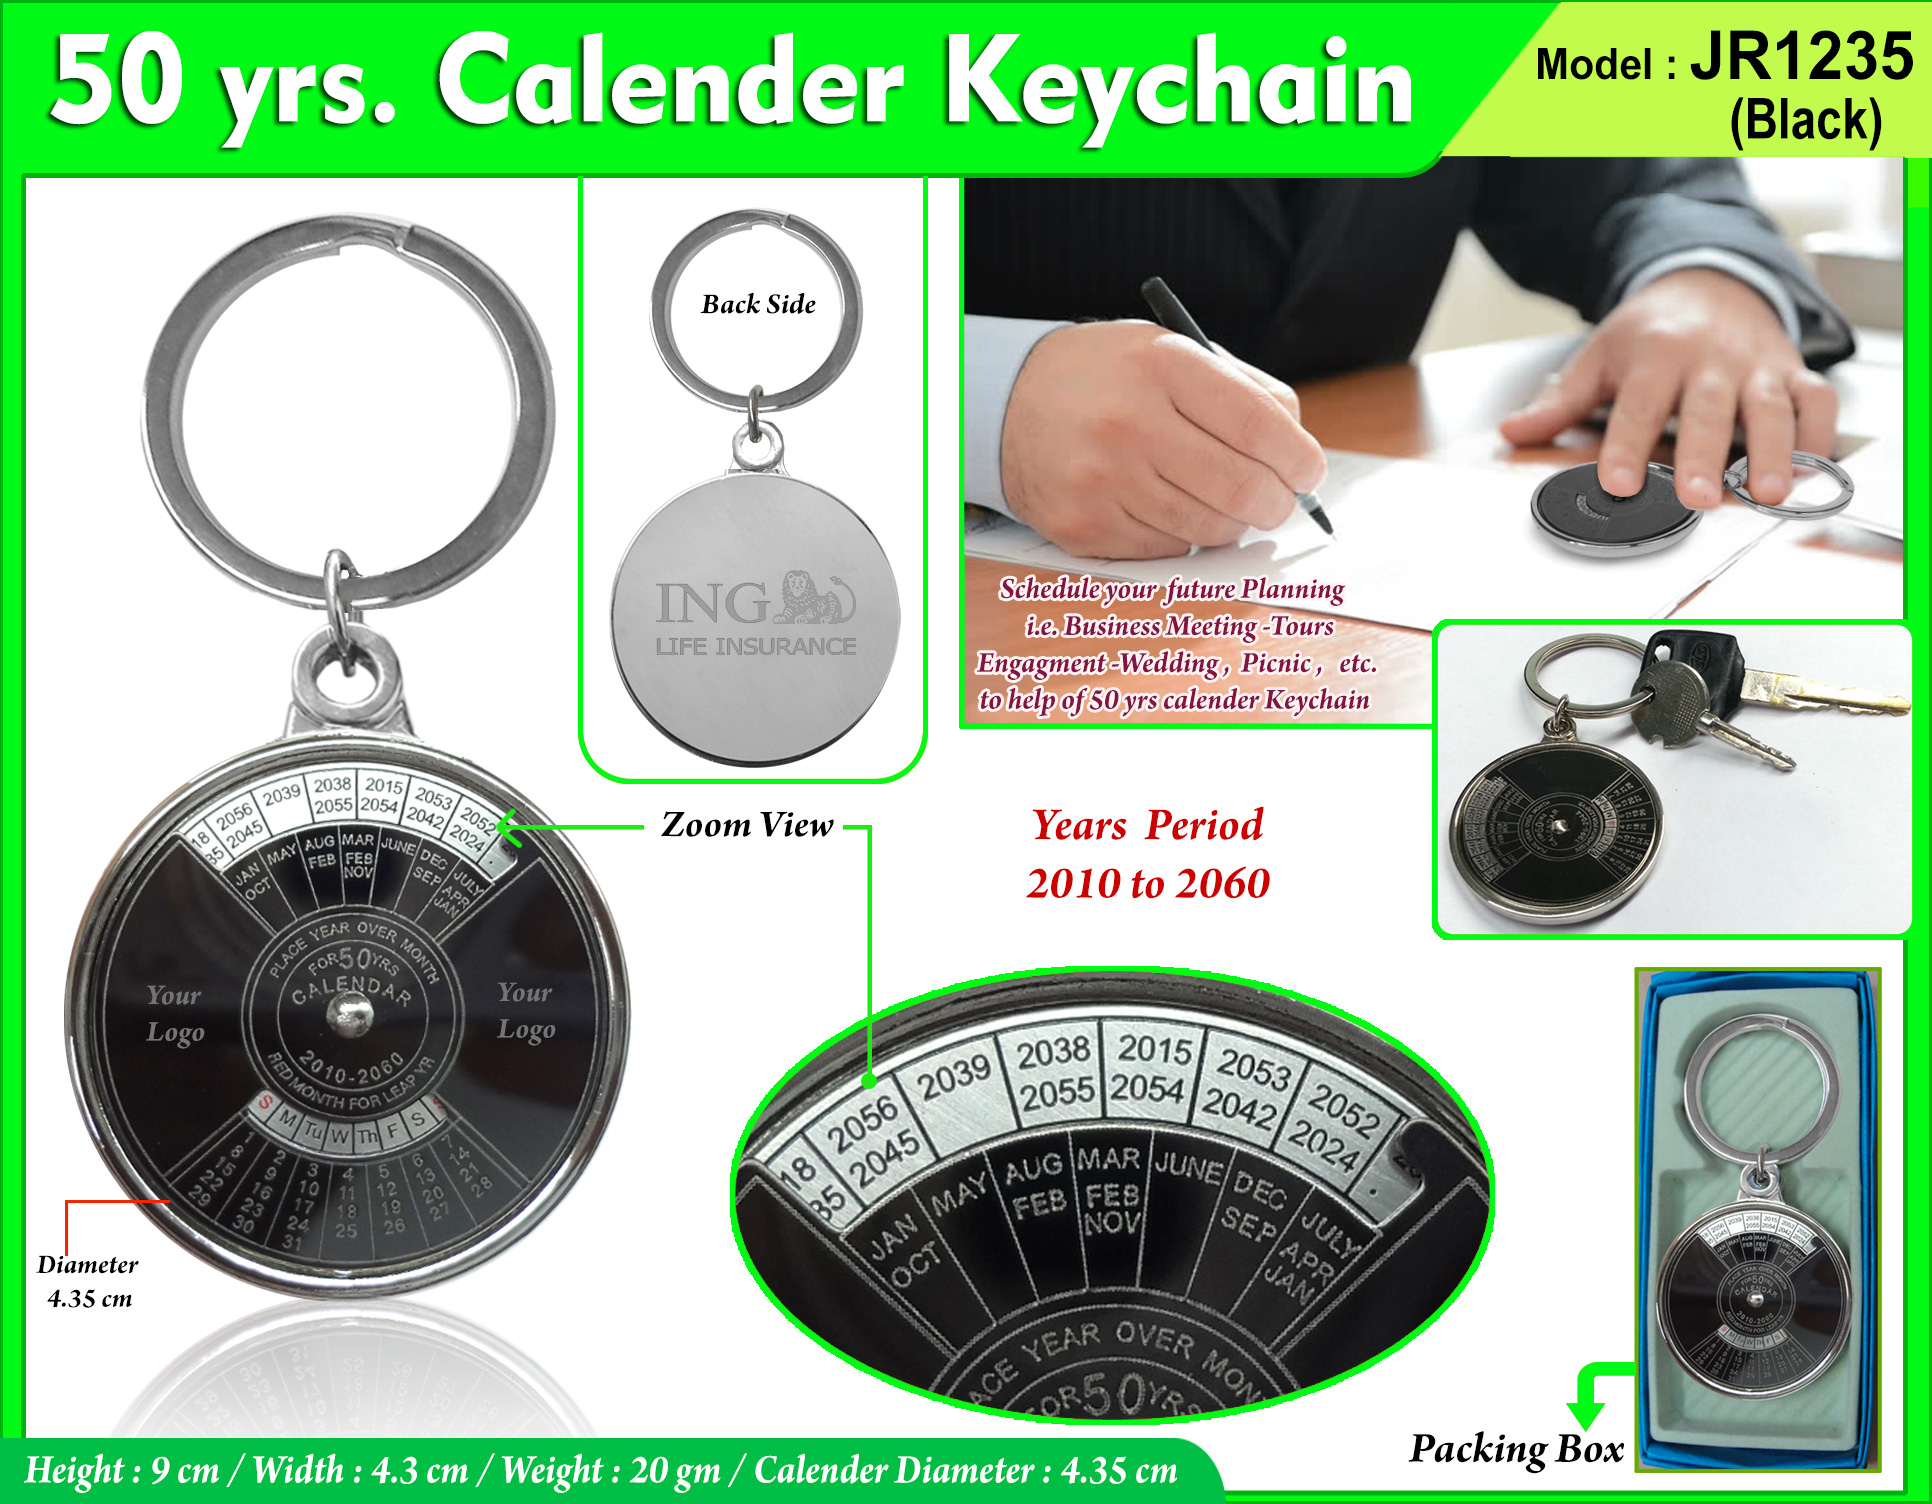 50 yrs Metal Calendar Keychain JR-1235 Black